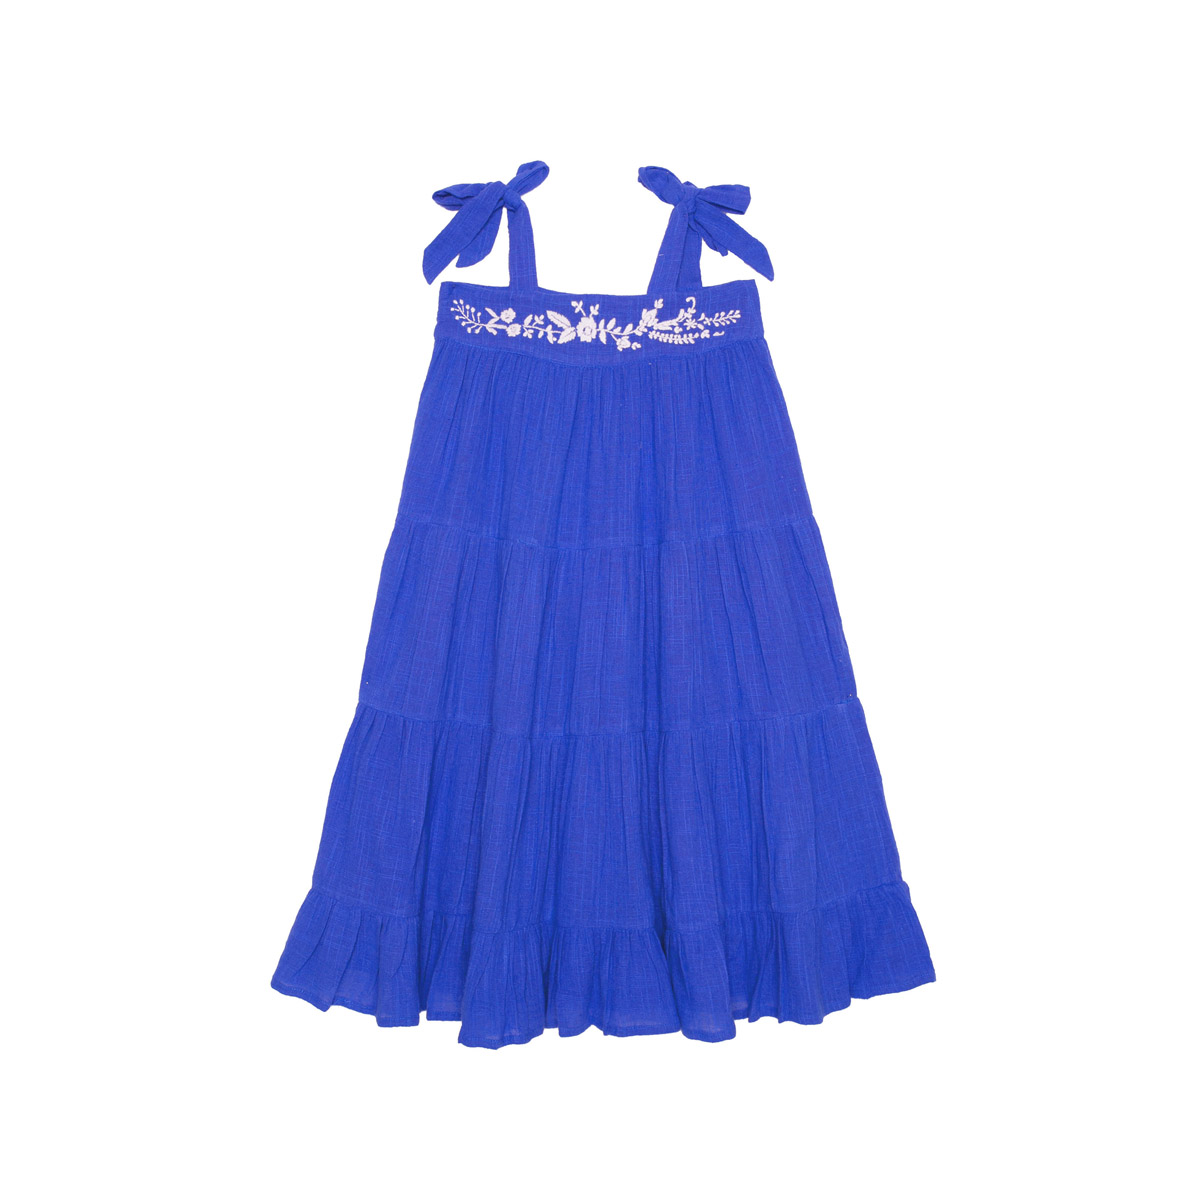 Coco & Ginger Women's April Dress